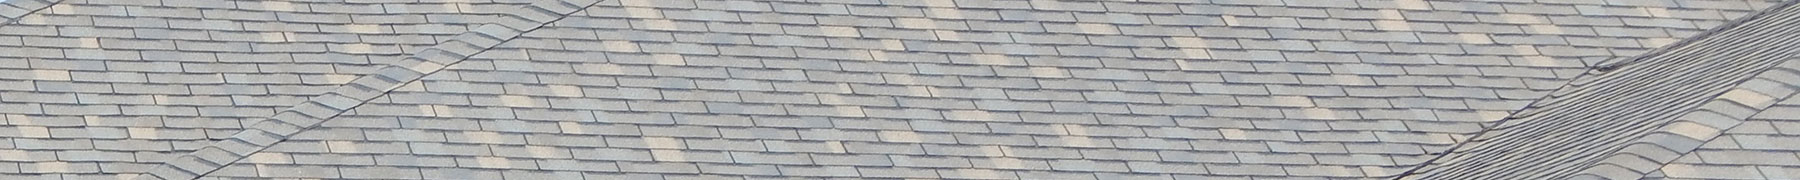 Questions to Ask When Hiring a Roofer Wichita KS